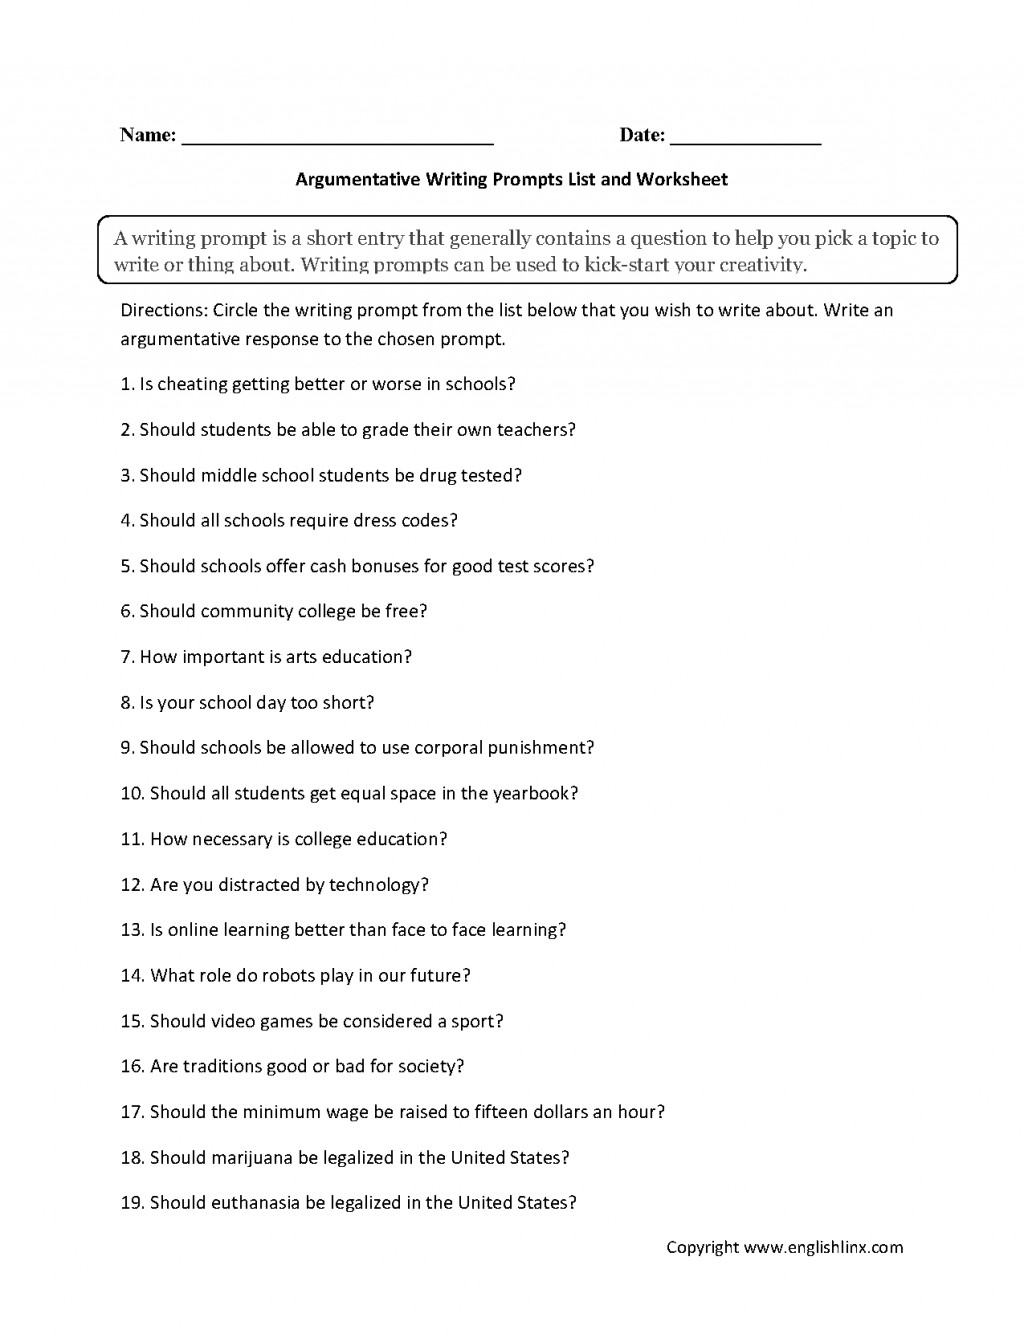 003 Argumentative Writing Prompts List Worksheet Essay Example For Best Essays College Persuasive Opinion 4th Grade Large